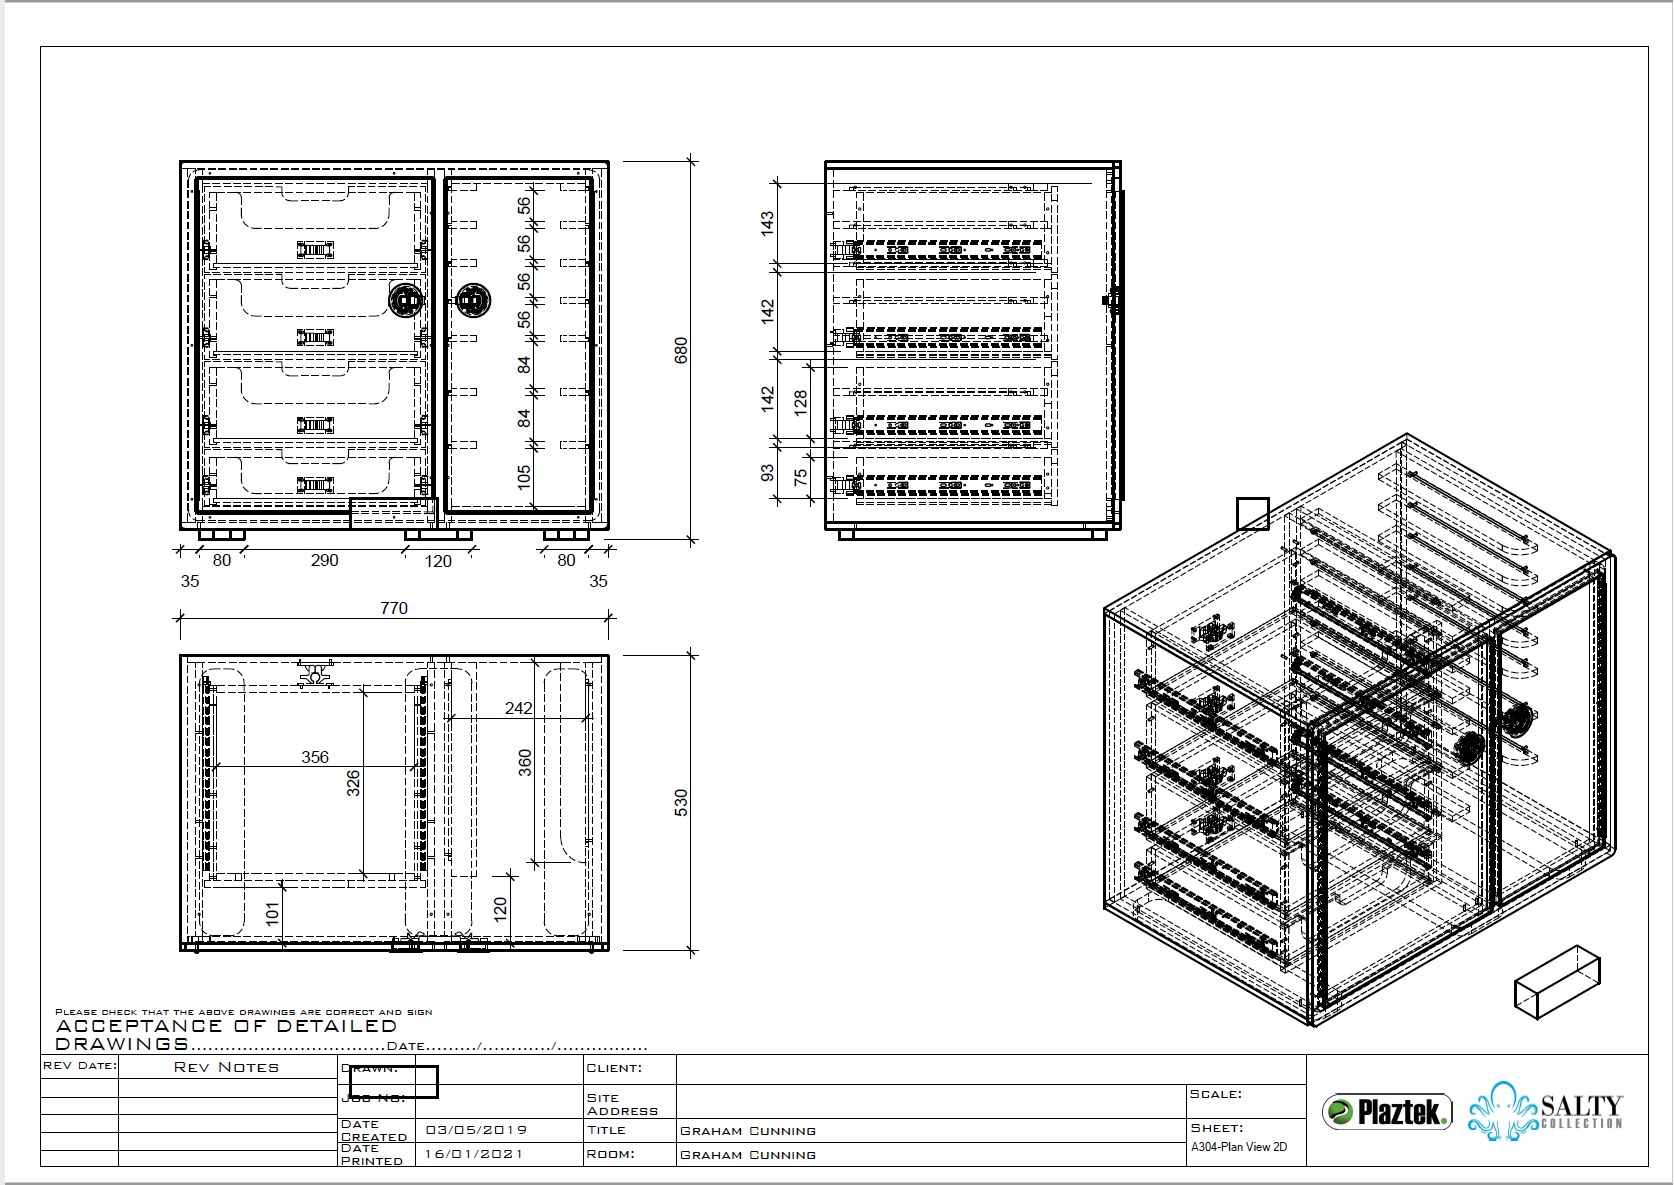 Plaztek Tackle Cabinets made to your size, detailed drawings for your approval